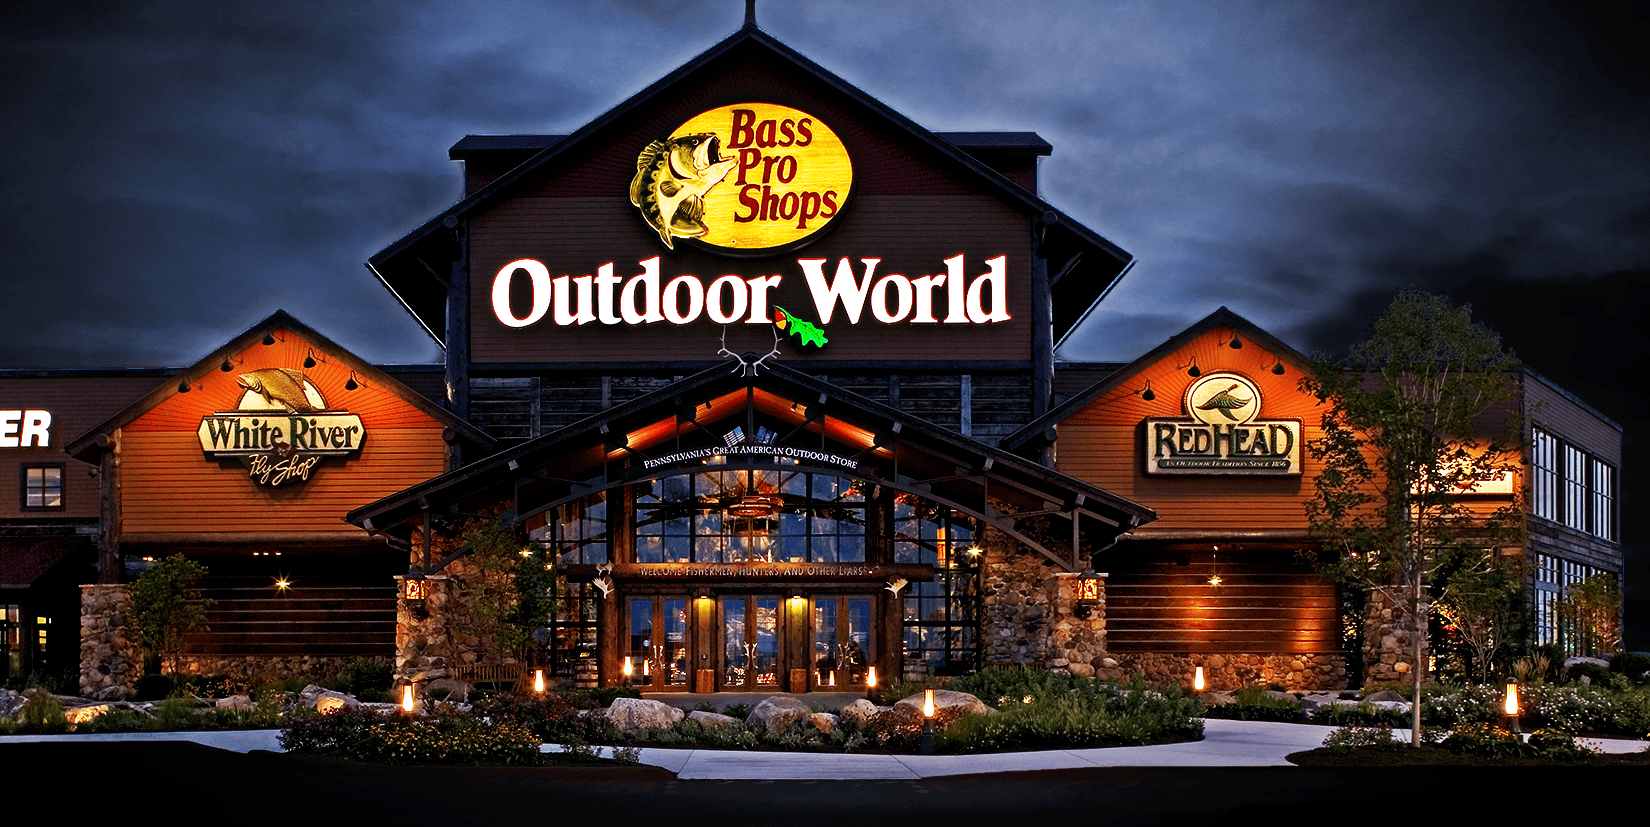 San Antonio Bass Pro Shops Architect 1